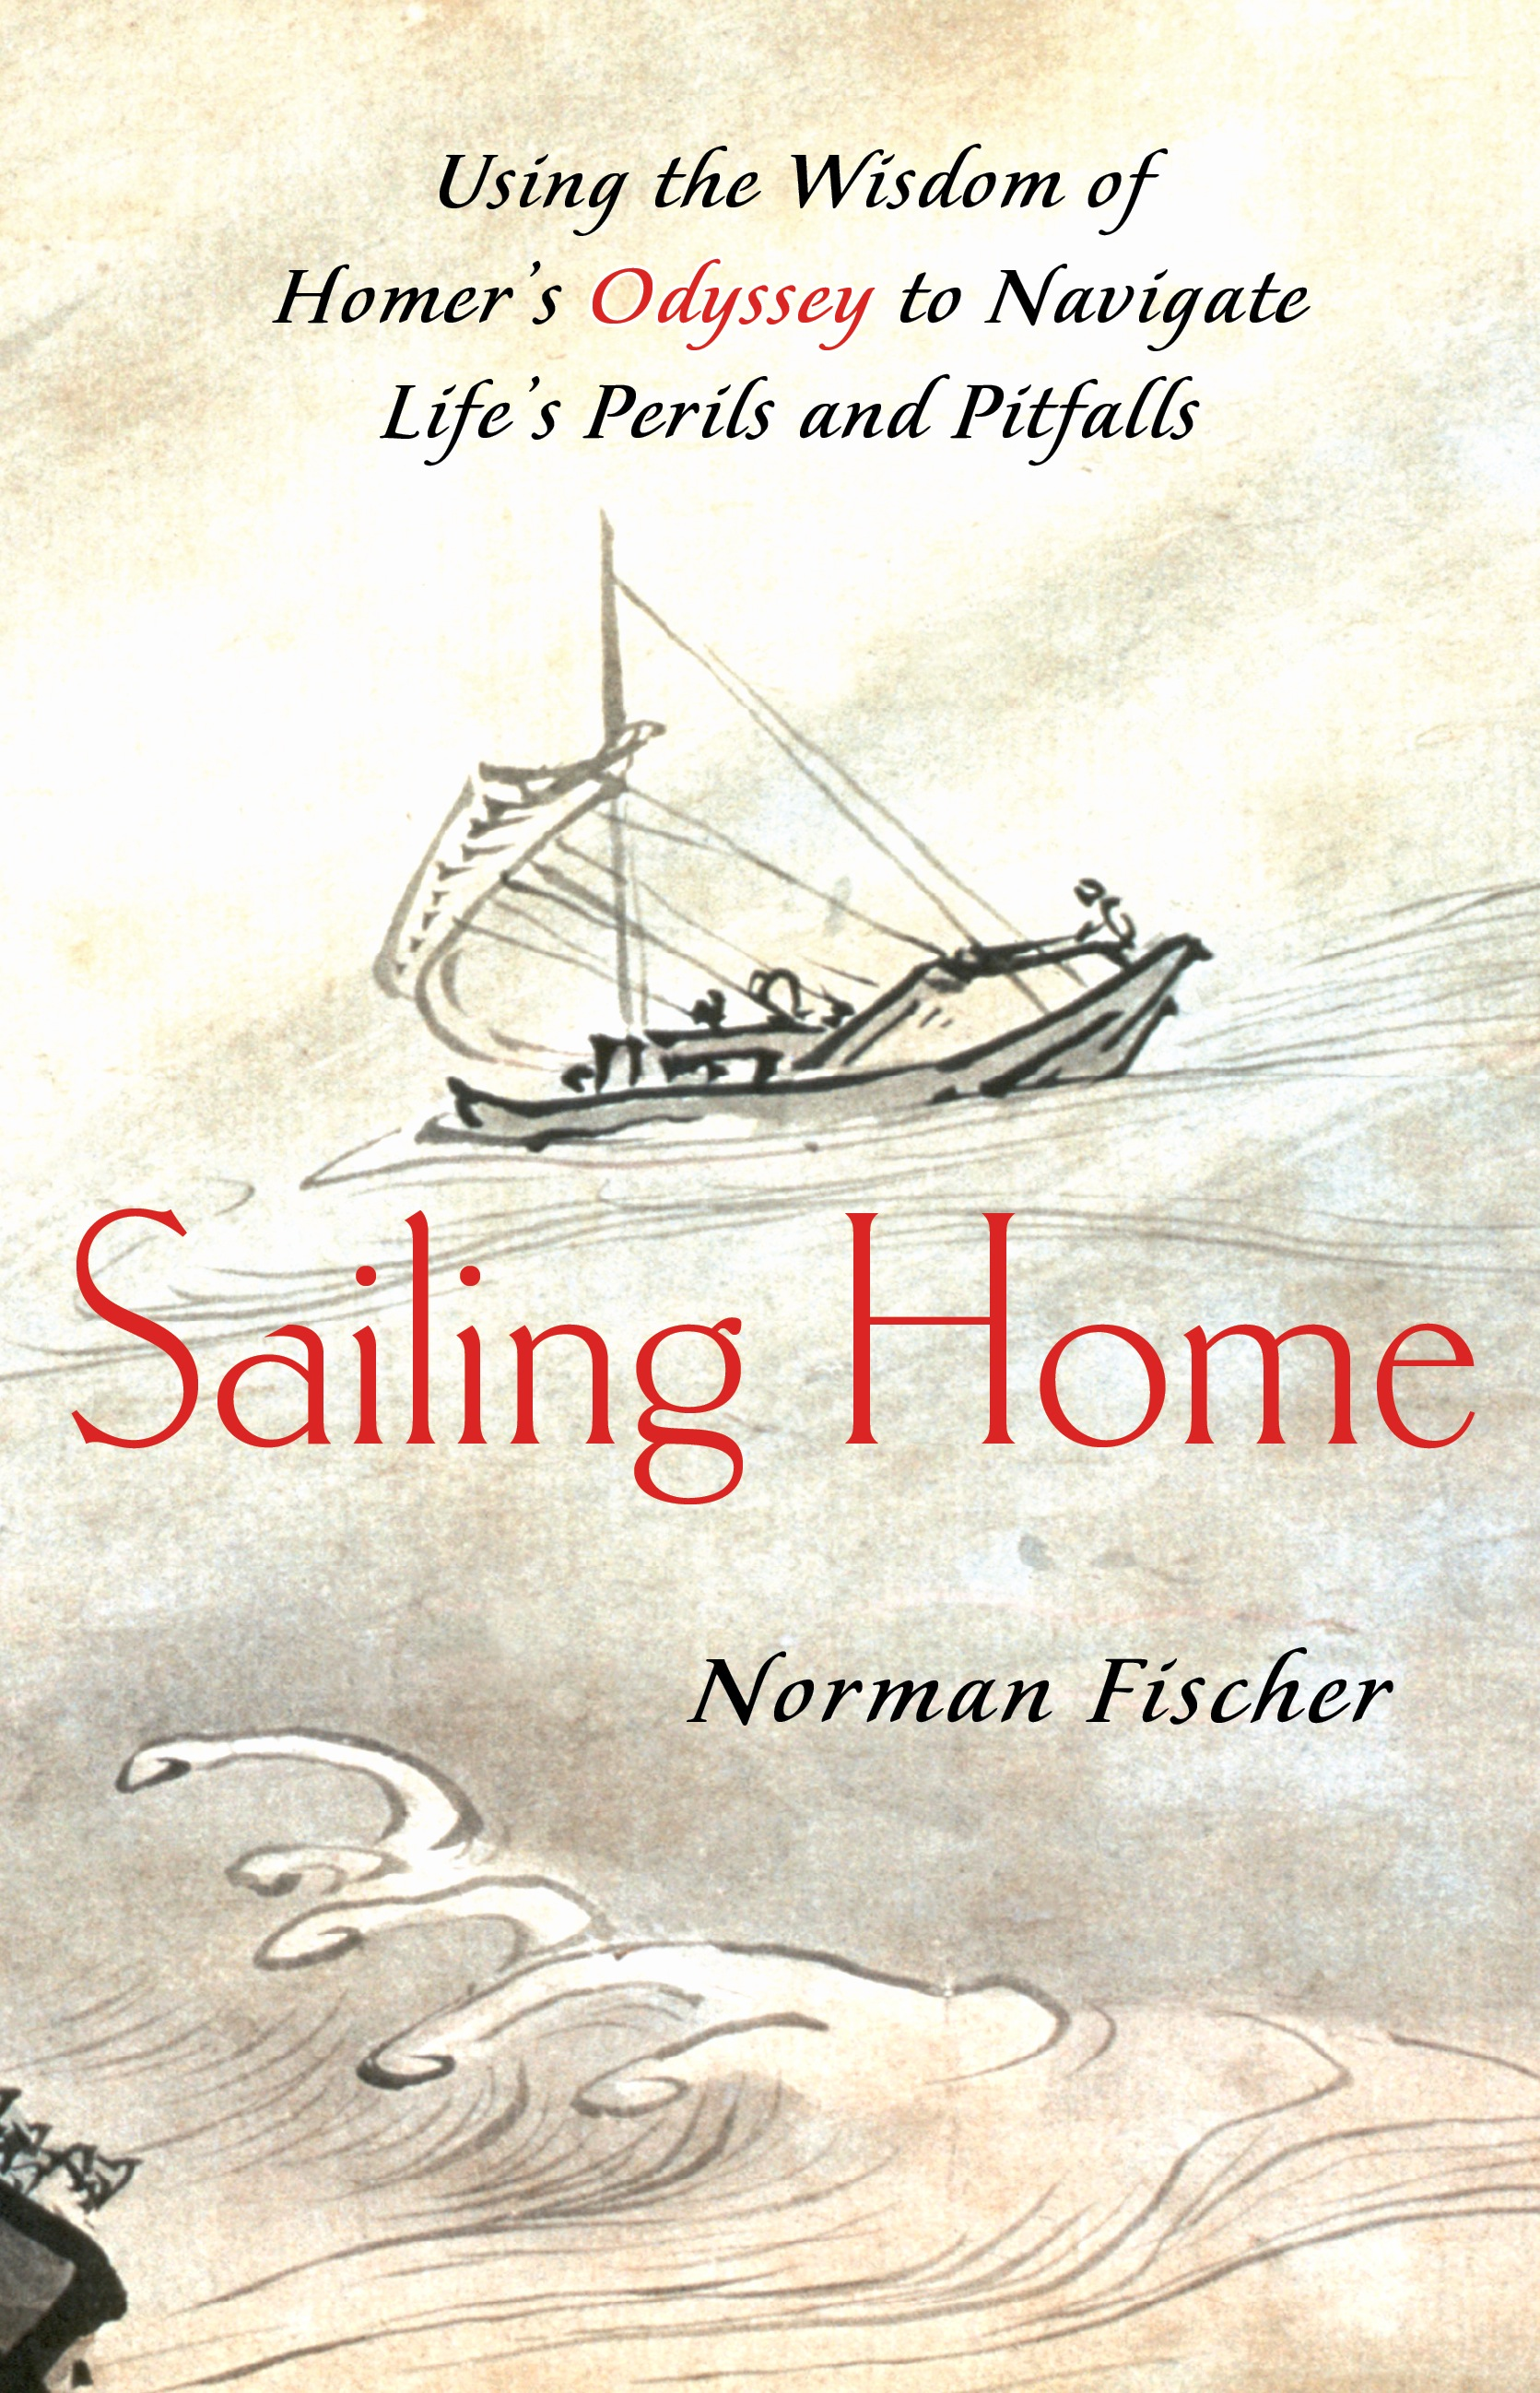 Book Cover Image (jpg): Sailing Home